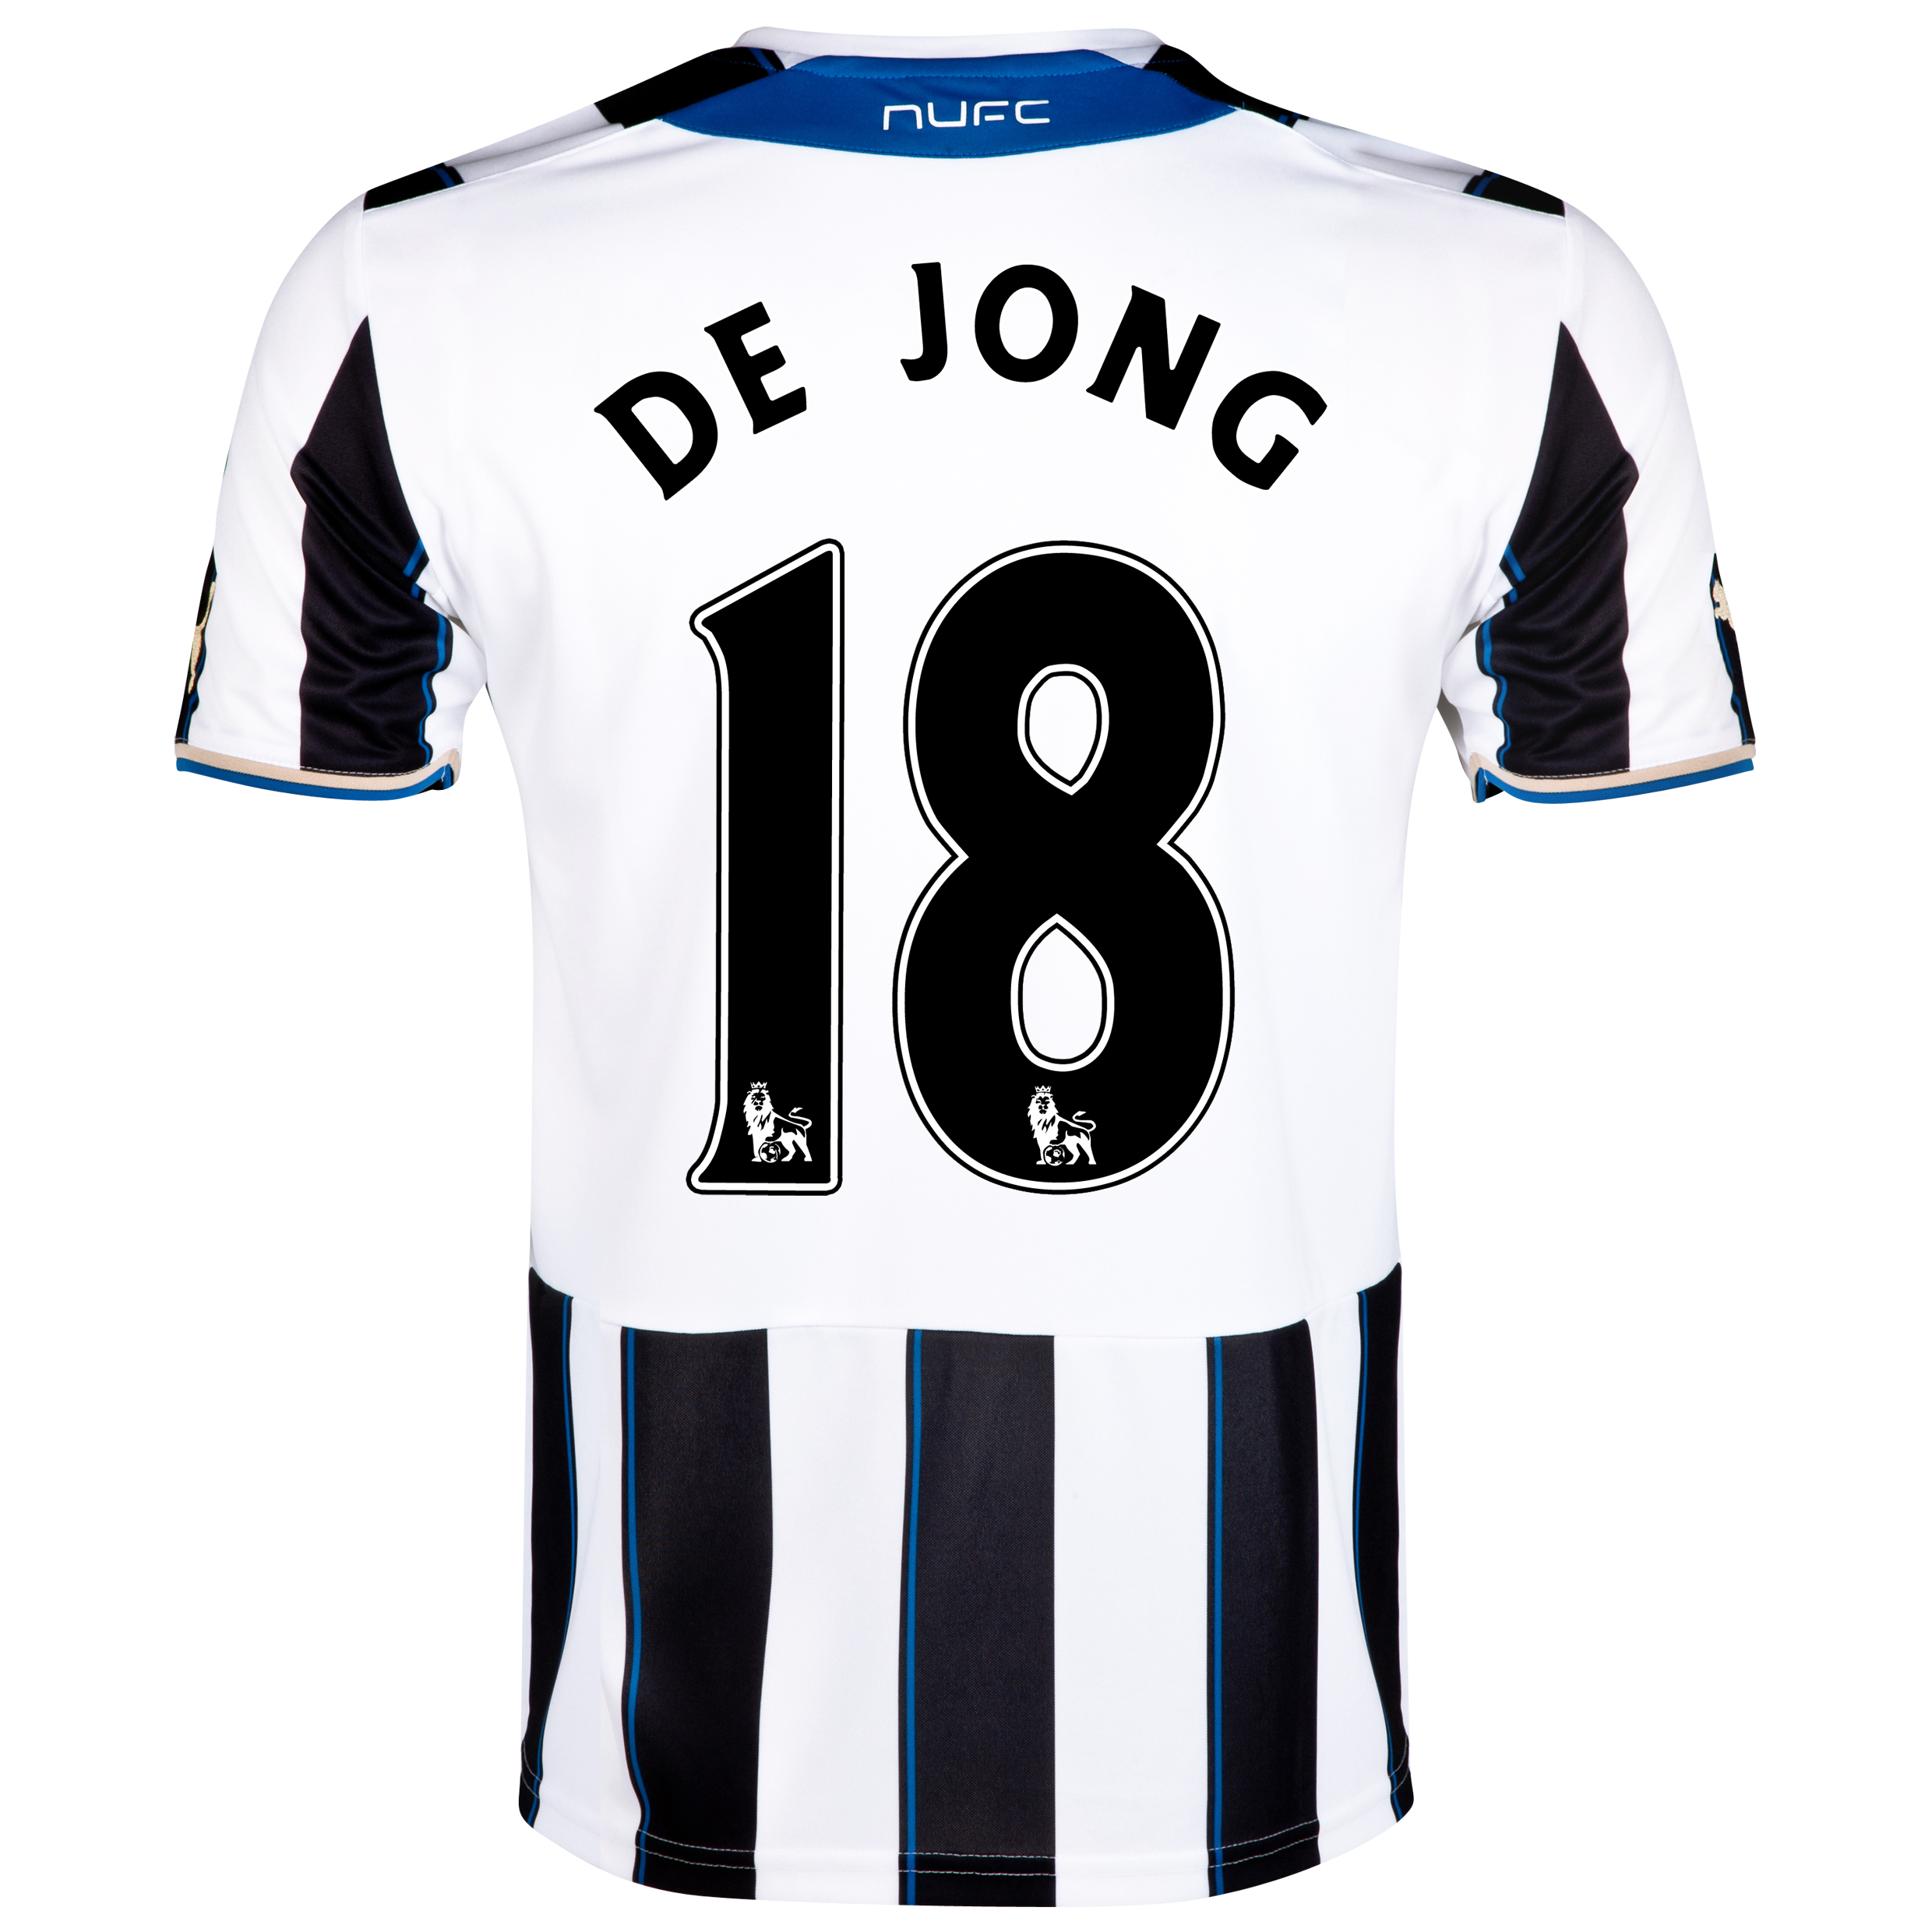 Newcastle United Home Shirt 2013/14 with De Jong 18 printing